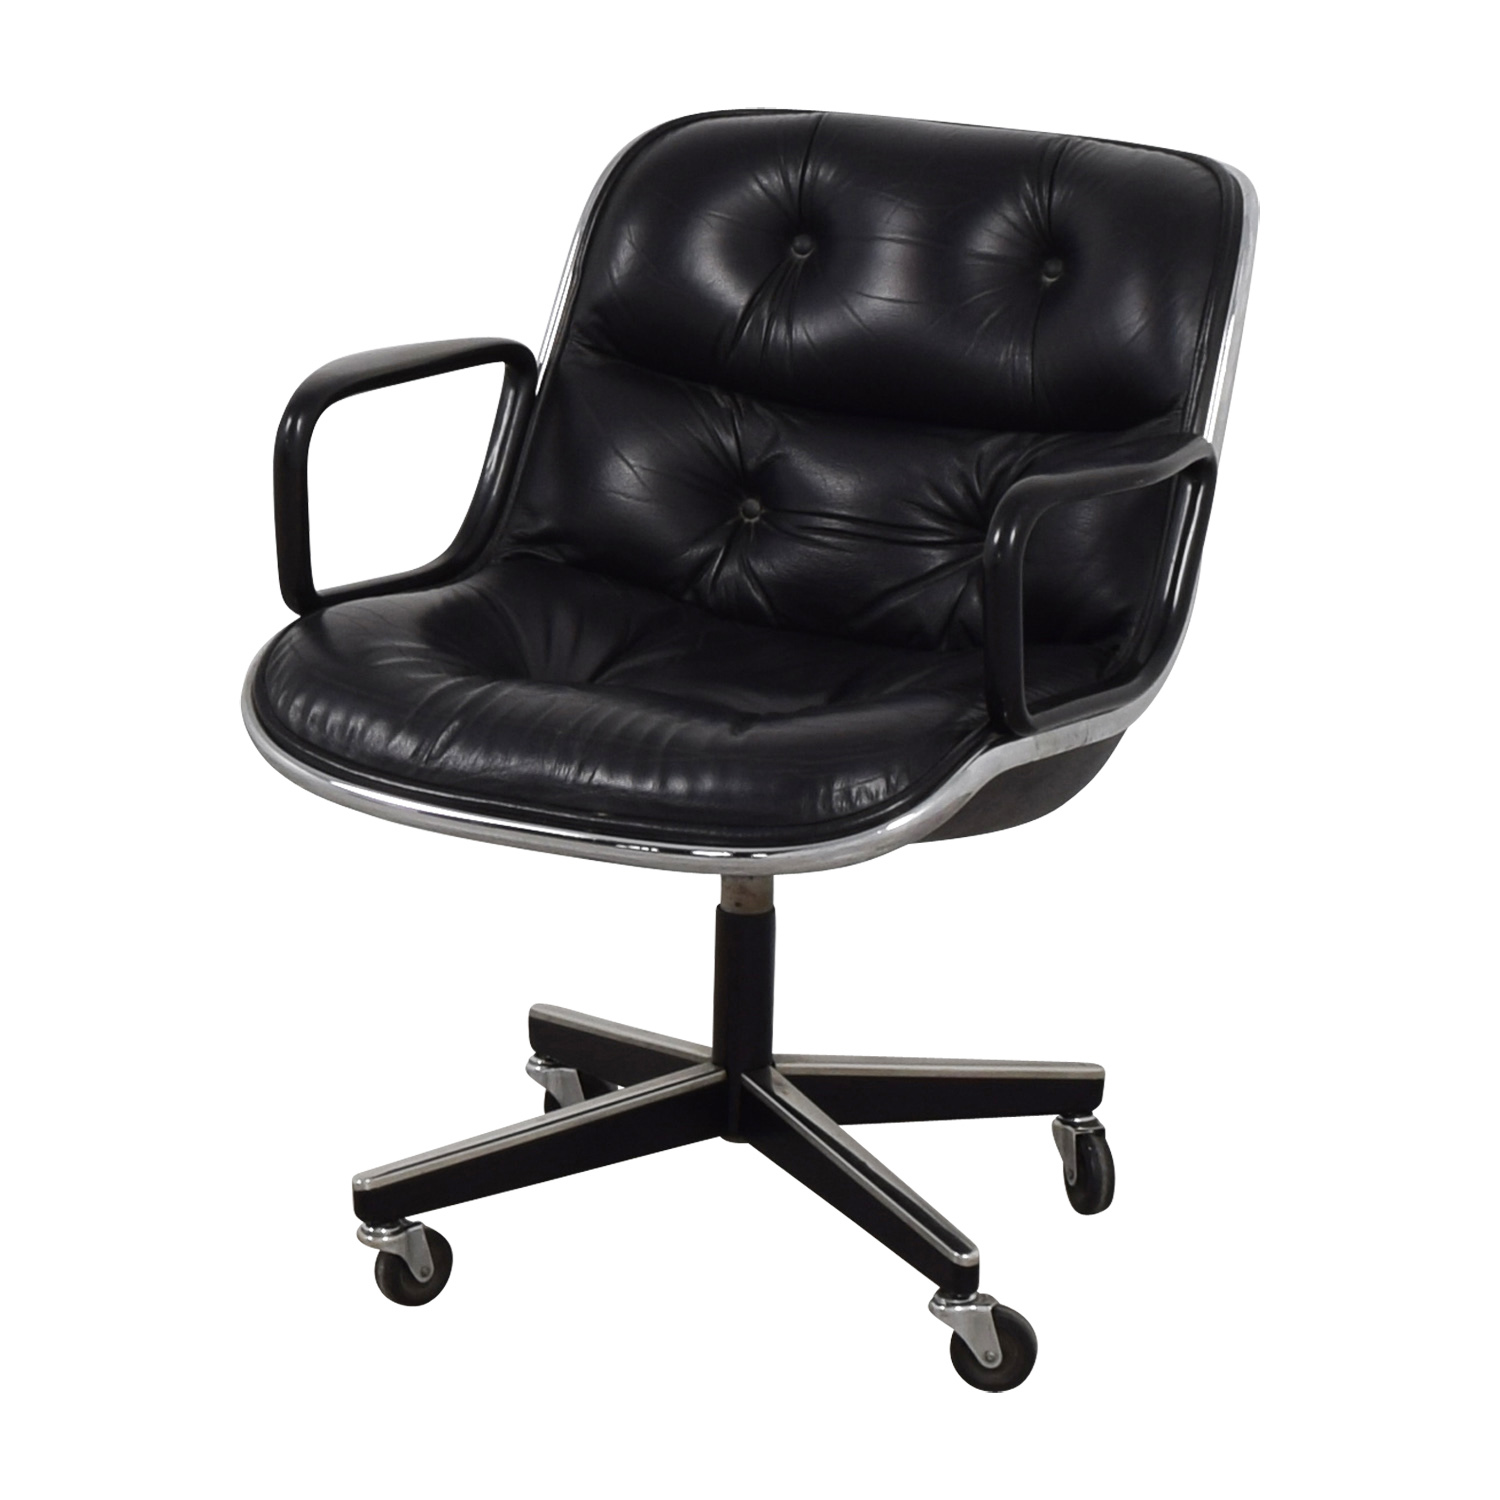 71 Off Black Tufted Leather Computer Chair Chairs